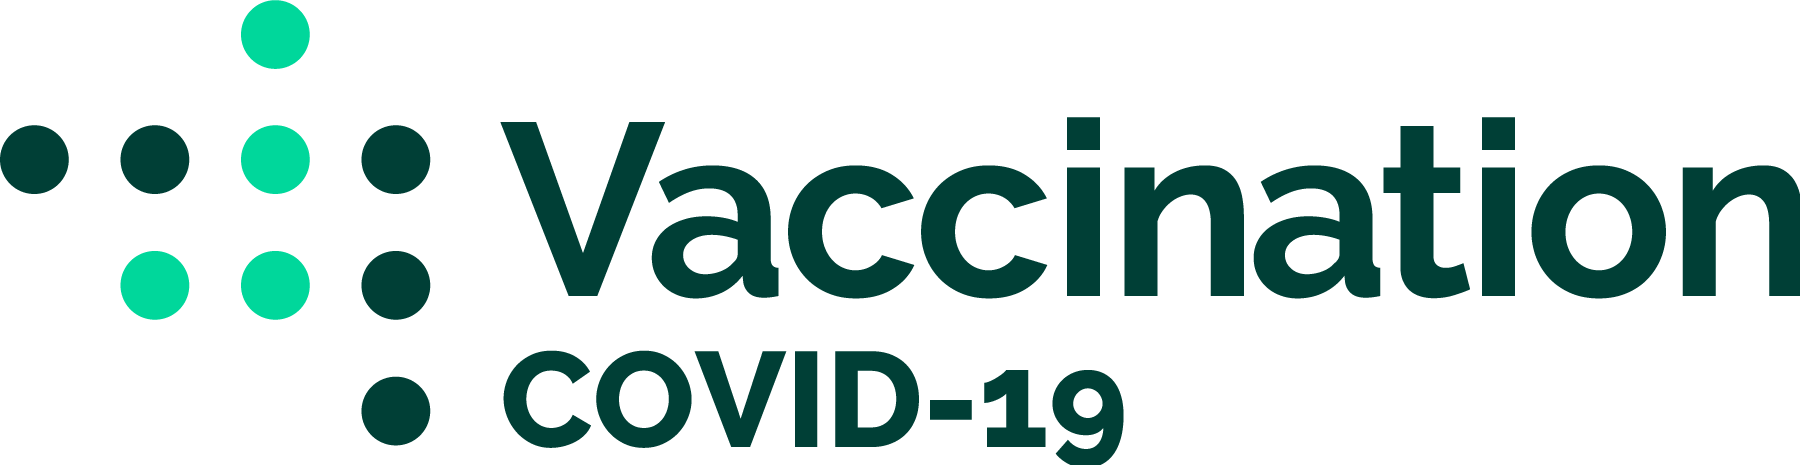 Vaccination for covid-19